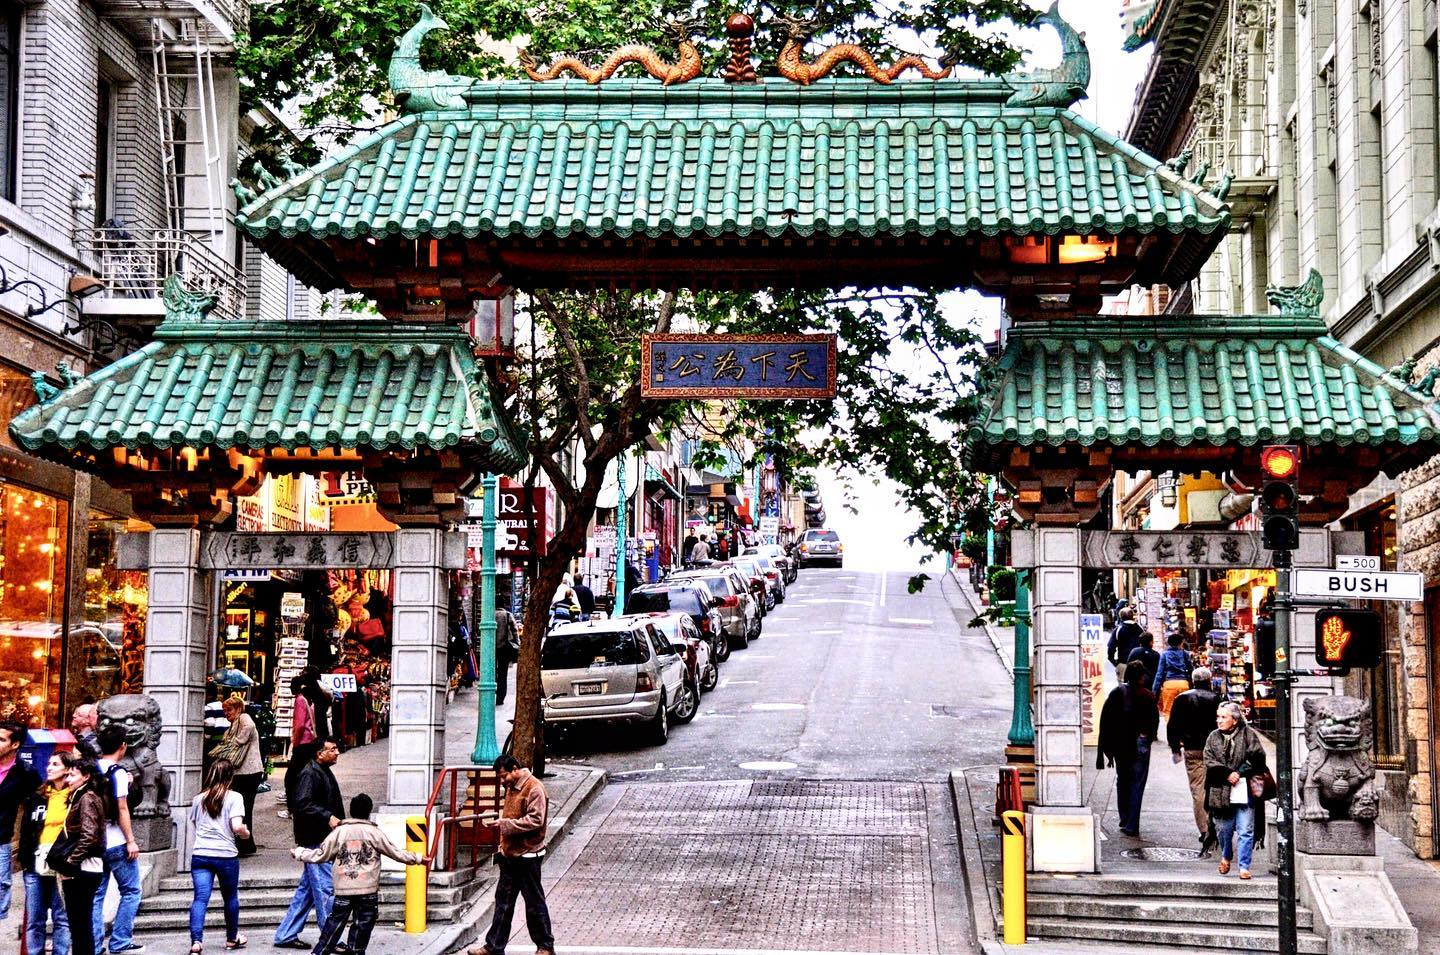 Dragon's Gate, San Francisco, California  A visit to bustling Chinatown is a must. San Francisco has the oldest and second largest Chinatown in North America. #usa #us #unitedstates #unitedstatesofamerica #sanfrancisco #sanfran #chinatown #chinatownsanfrancisco #california #californialove #californiatrip #californiatravel #citybythebay #dragongate #citytrip #citytravel #cityphotography #citypic #travelphotography #reisefotografie #citylove #sanfranciscolife #travelgram #traveladdict #travelblog #travelblogger #reiseblog #reiseblogger